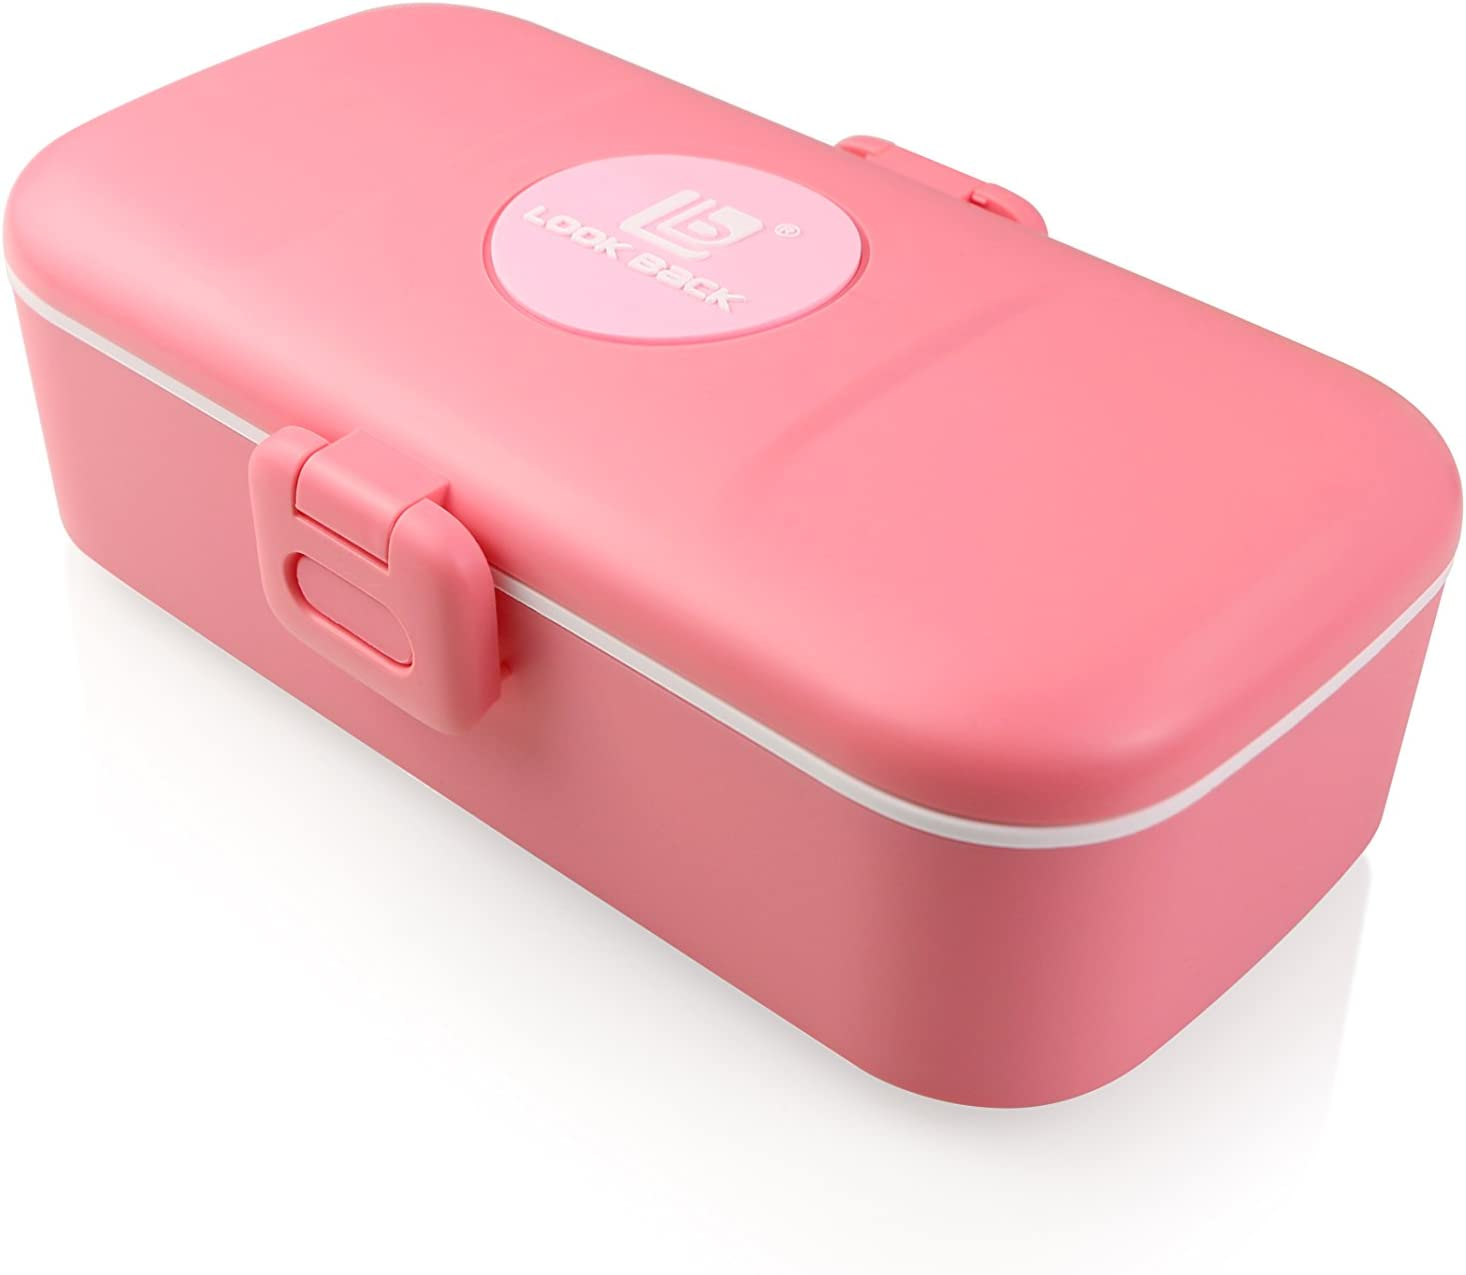 Antom Lunch Box Bento Containers BPA-Free with Cutlery Bargain Le Cheap mail order sales